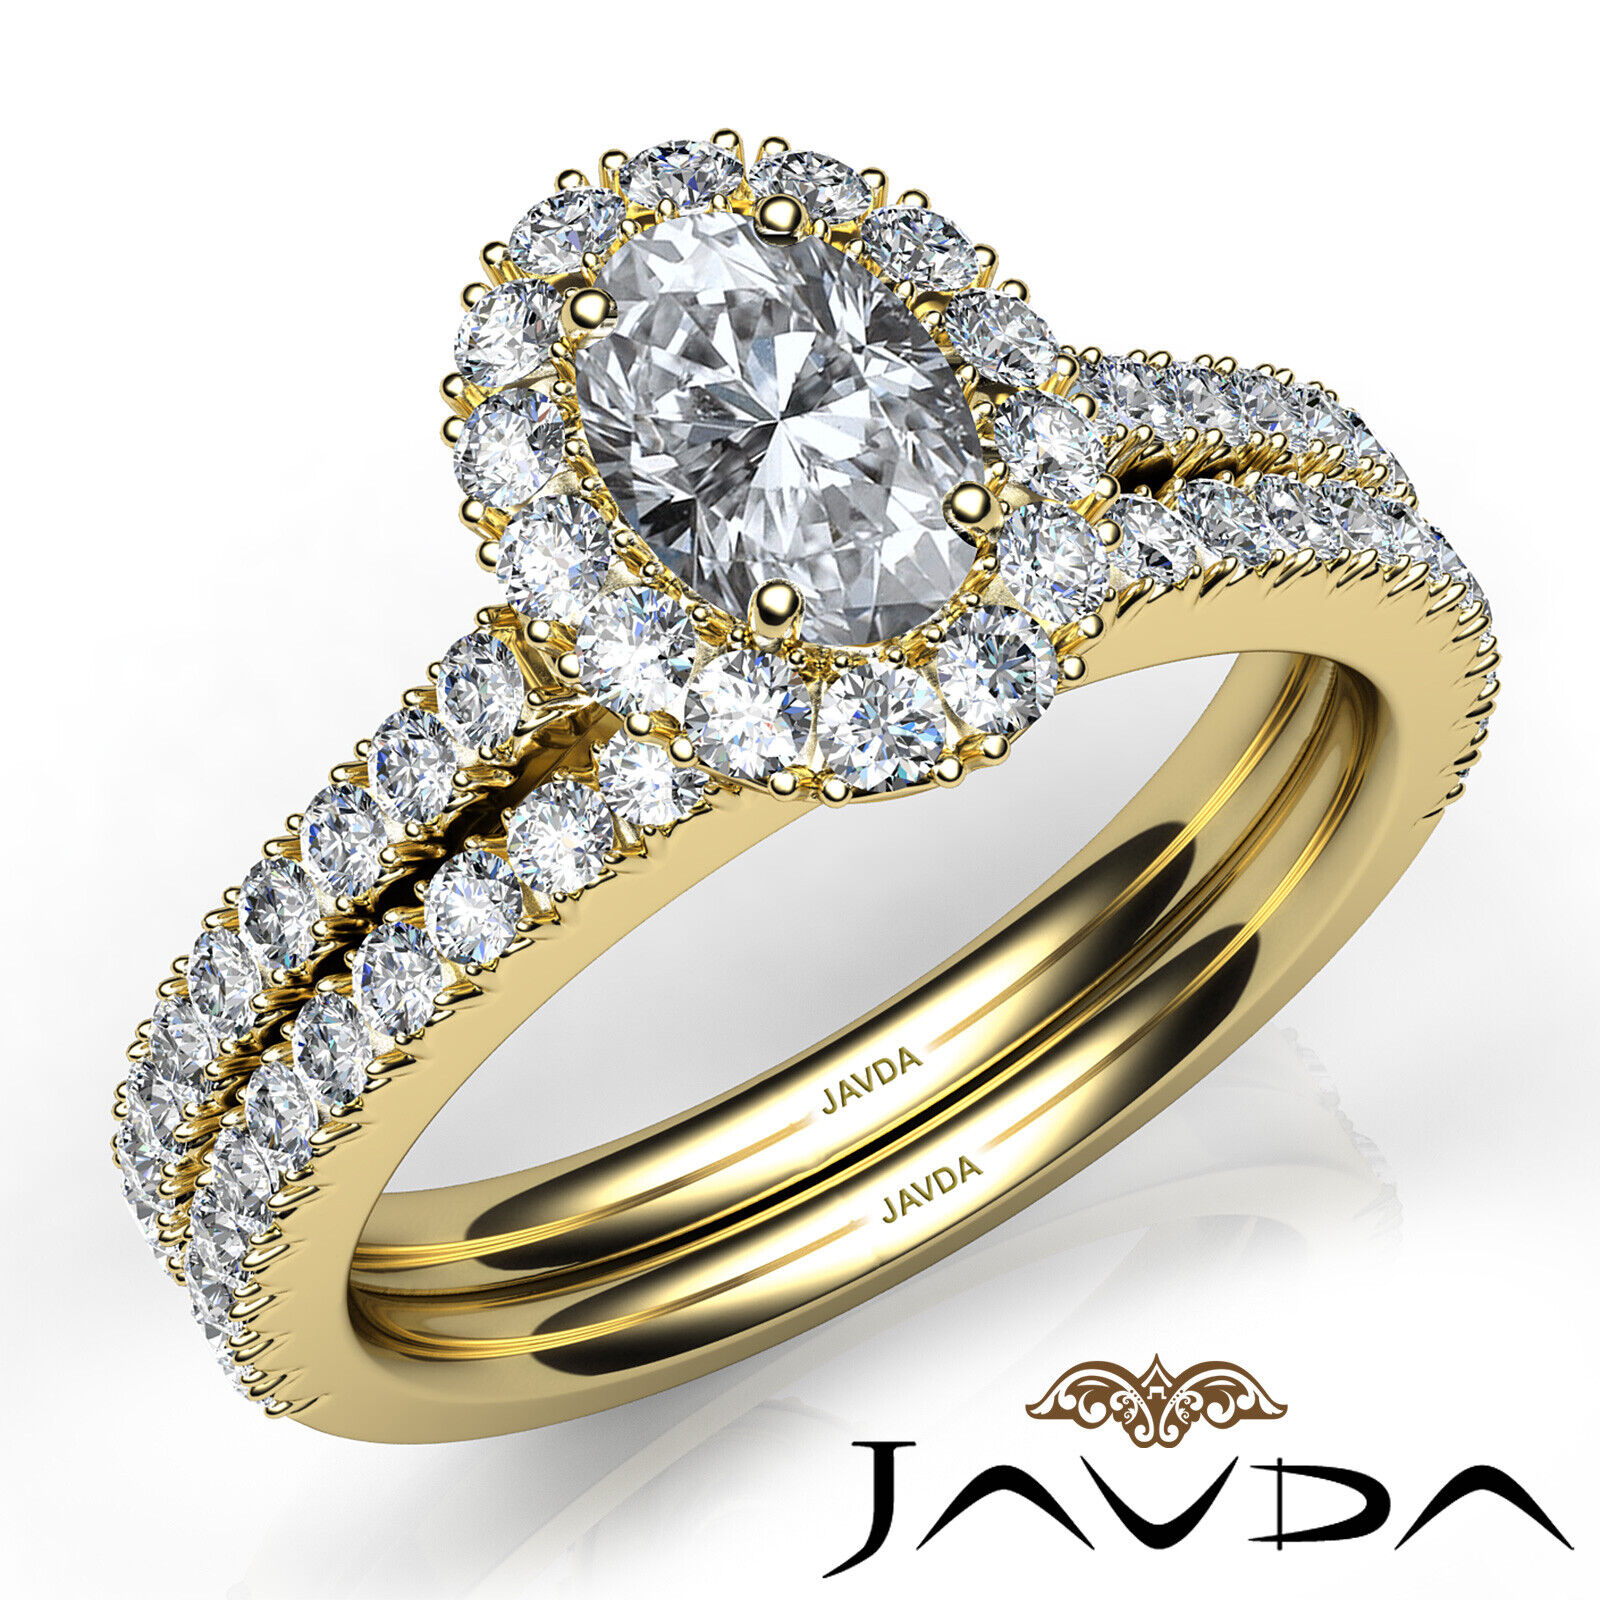 2.21ctw Halo Bridal French Pave Oval Diamond Engagement Ring GIA F-VVS2 W Gold 9